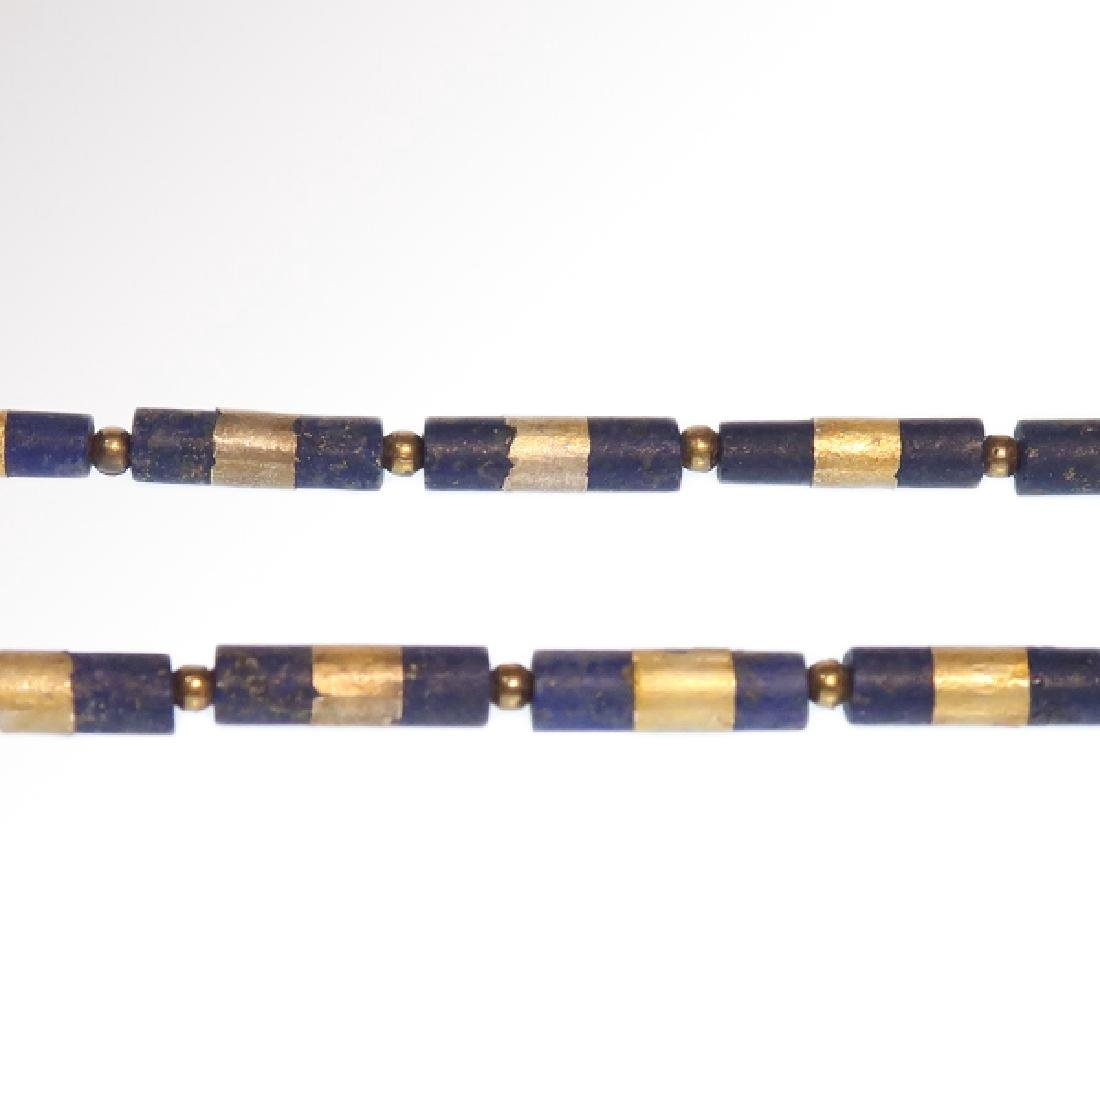 Egyptian Lapis and Gold Necklace, c. 300-200 B.C. - 4